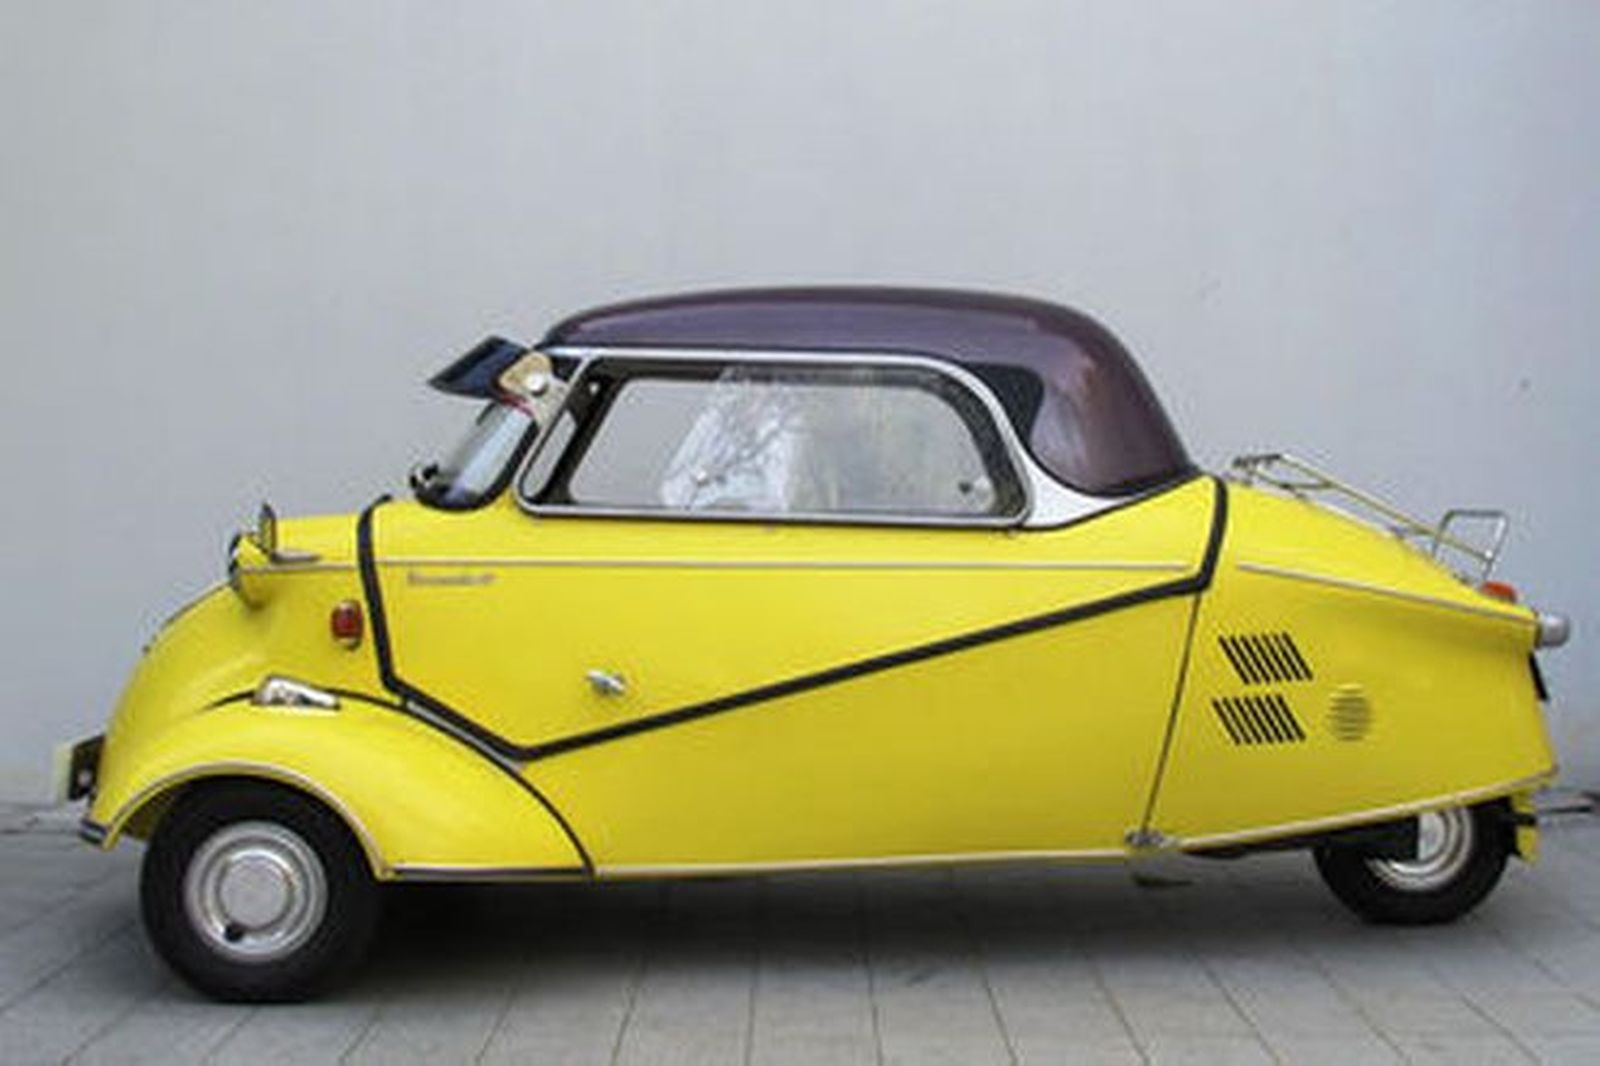 Sold messerschmitt kr200 3 wheeler microcar auctions for Classic 3